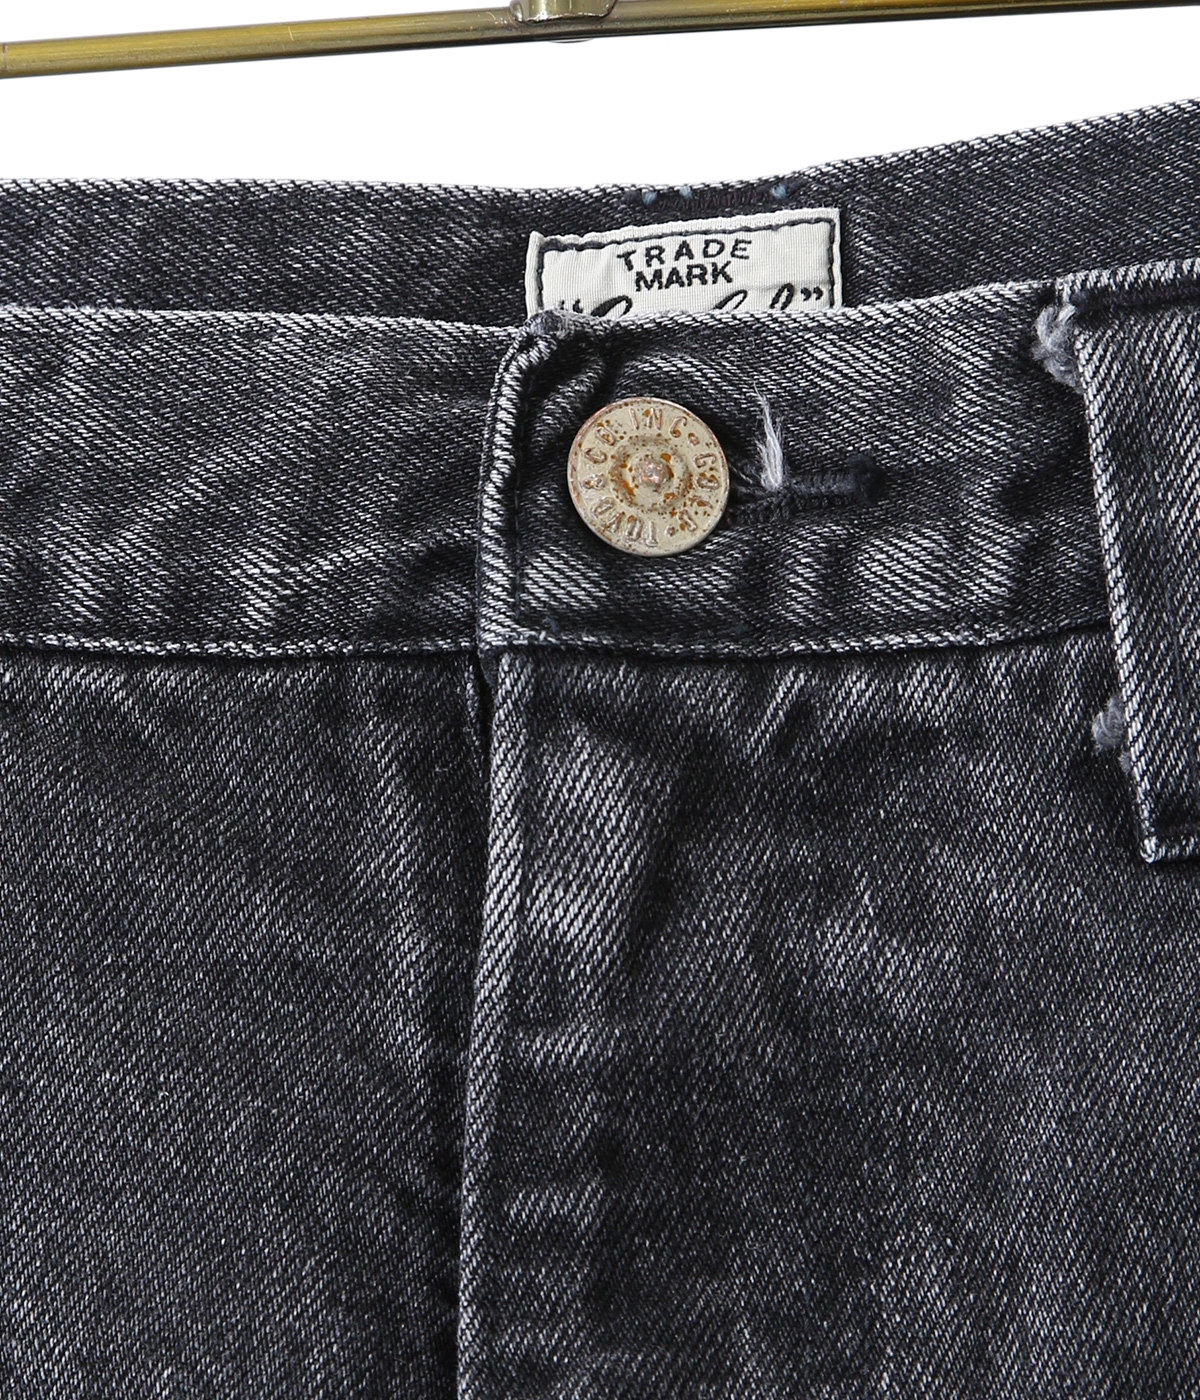 【予約】14oz. DENIM 5POCKET WIDE PANTS AGED MODEL